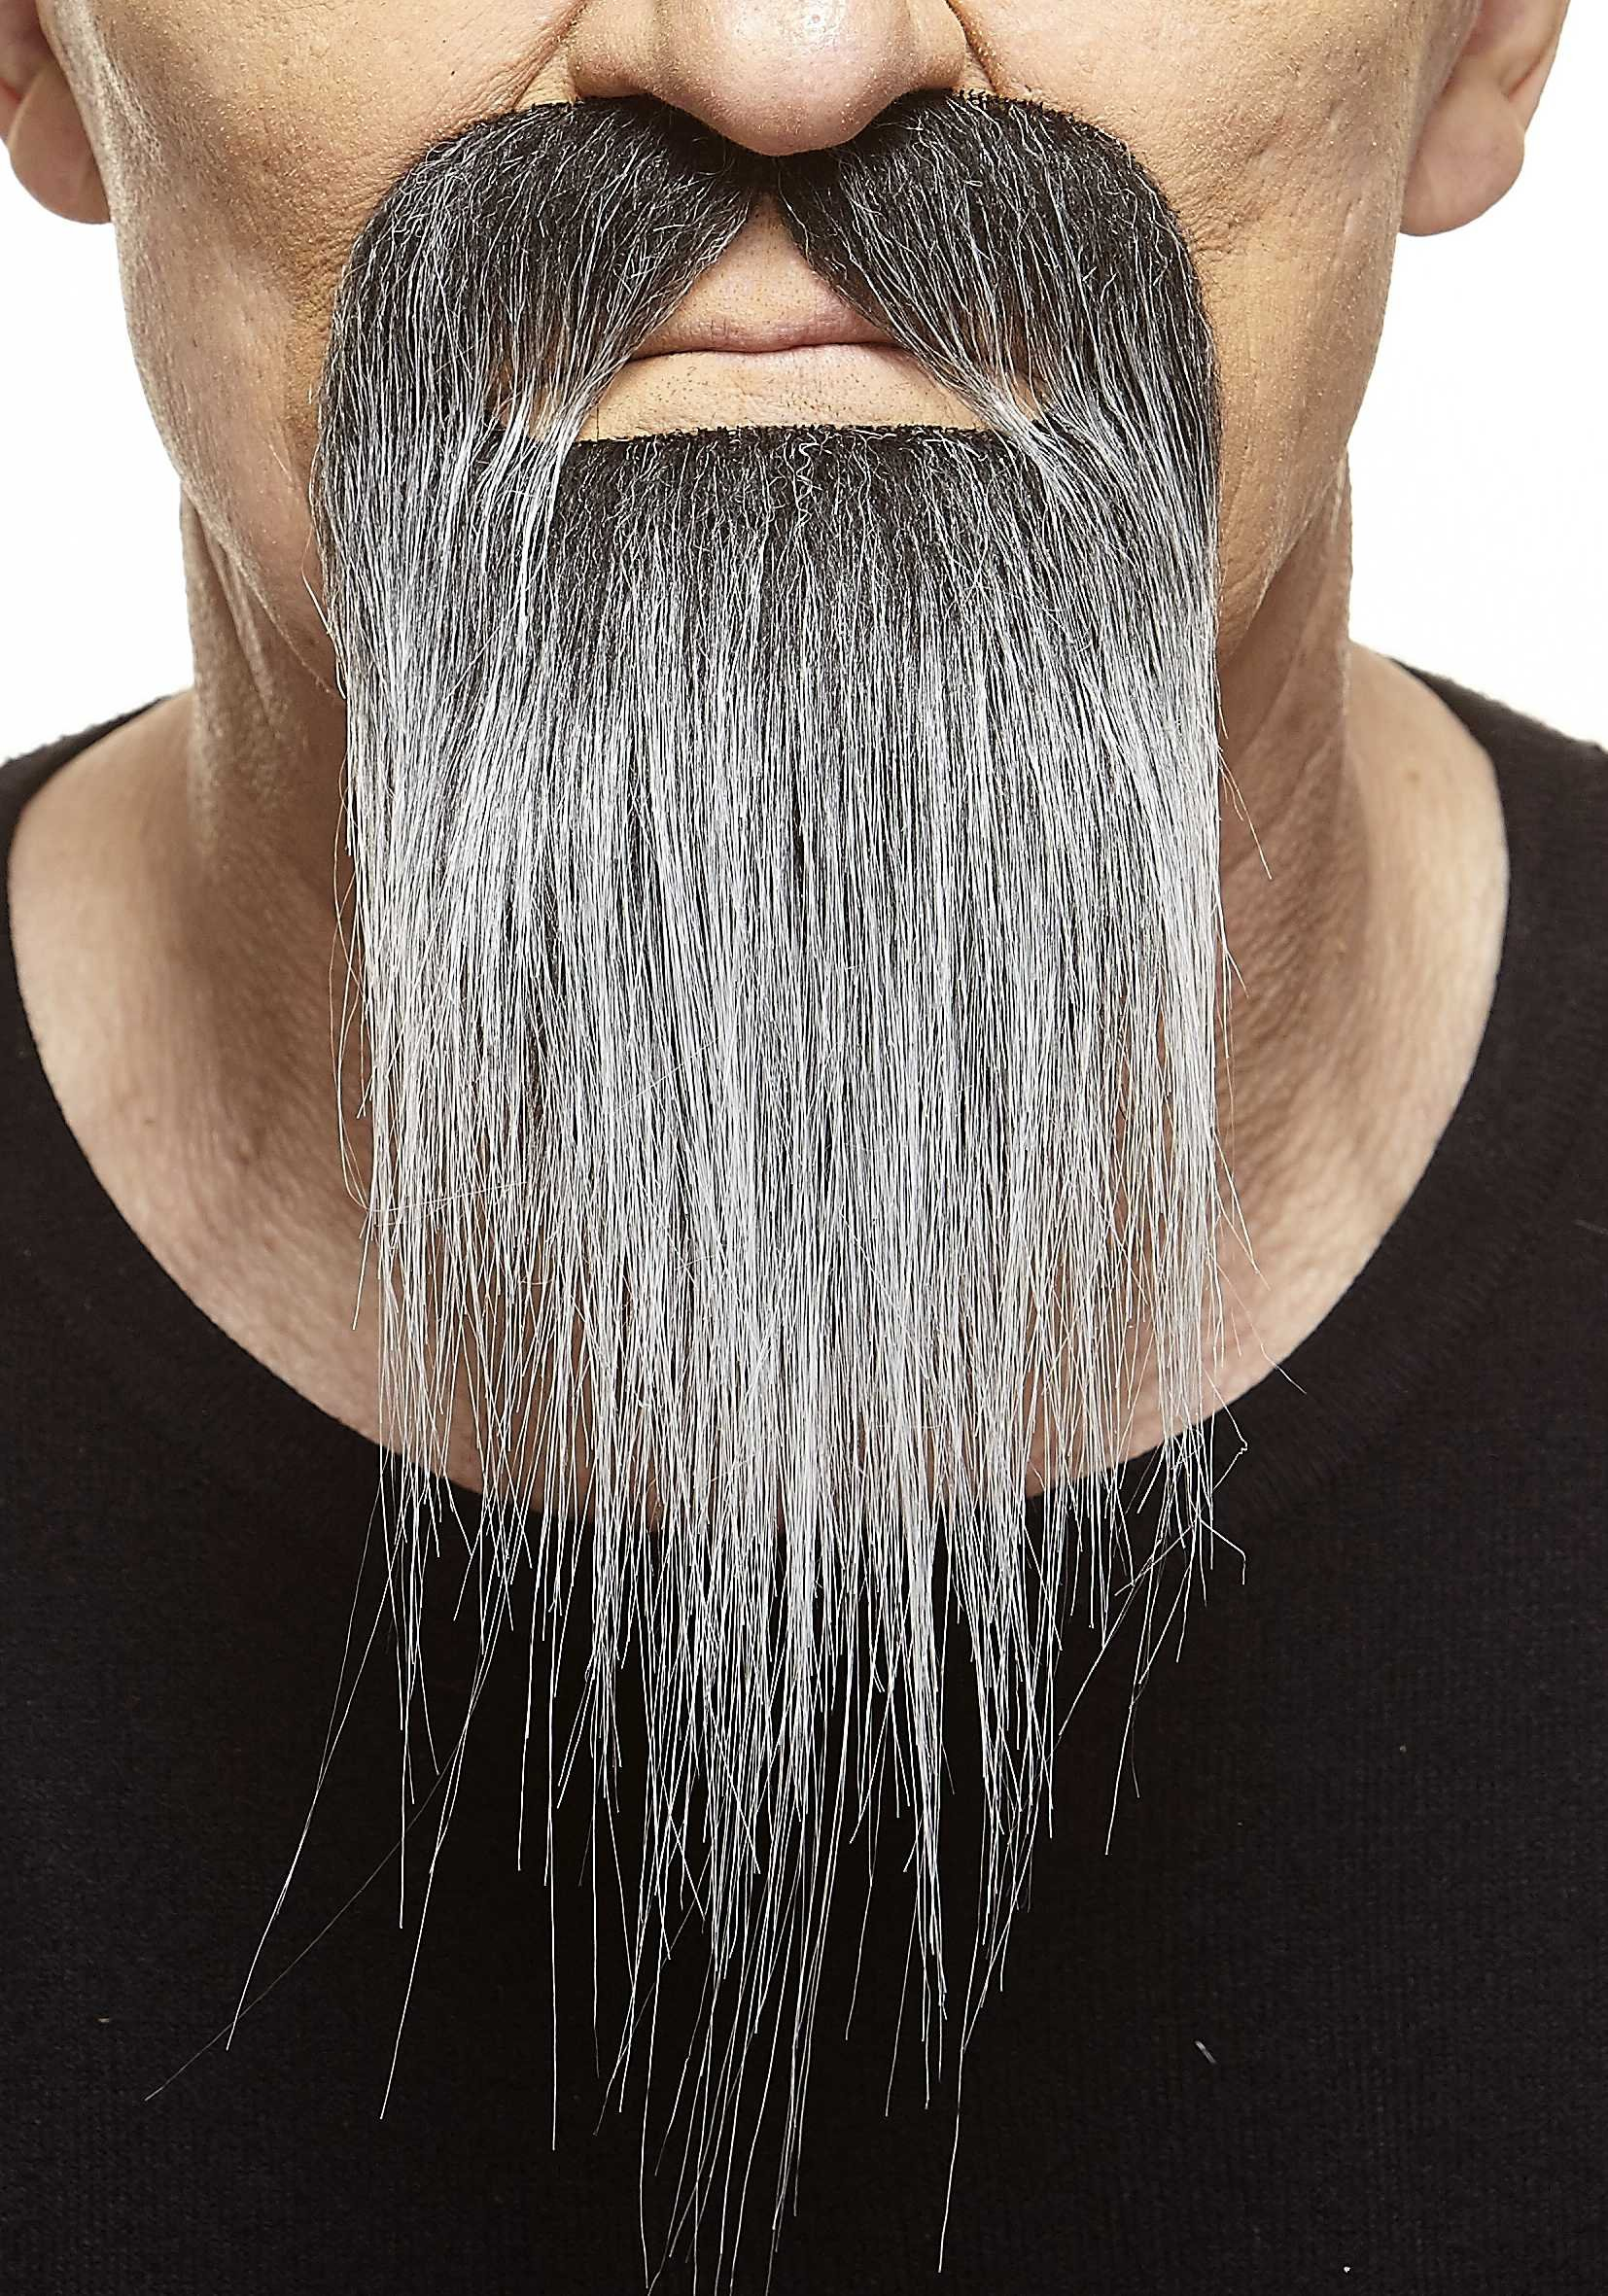 Mustaches Self Adhesive, Novelty, Fake Ducktail Beard, Salt and Pepper Color